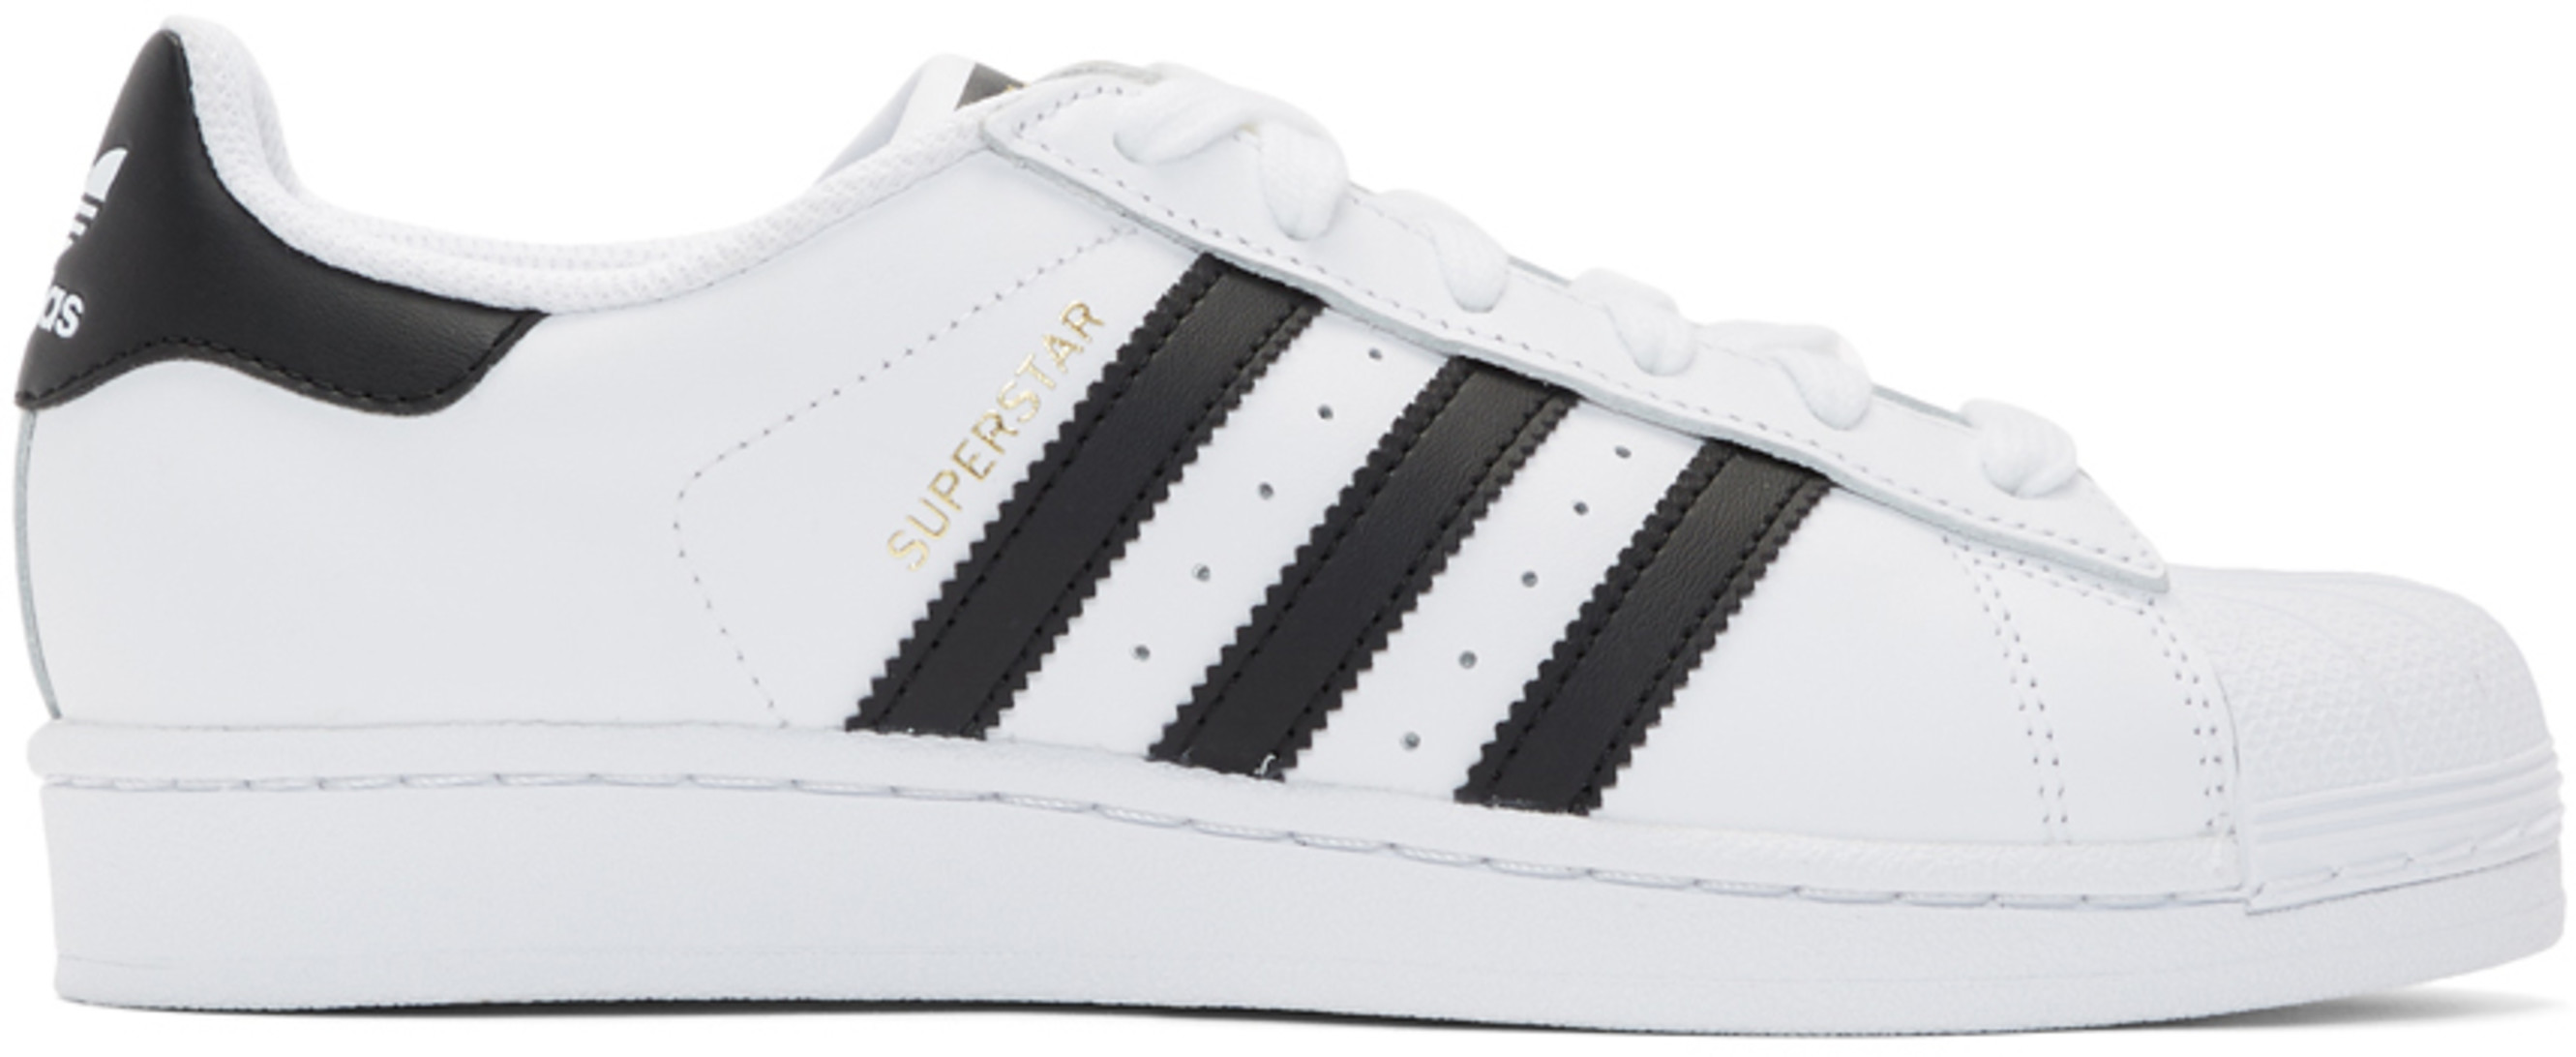 another chance 76572 8be66 Adidas Originals for Women SS19 Collection   SSENSE